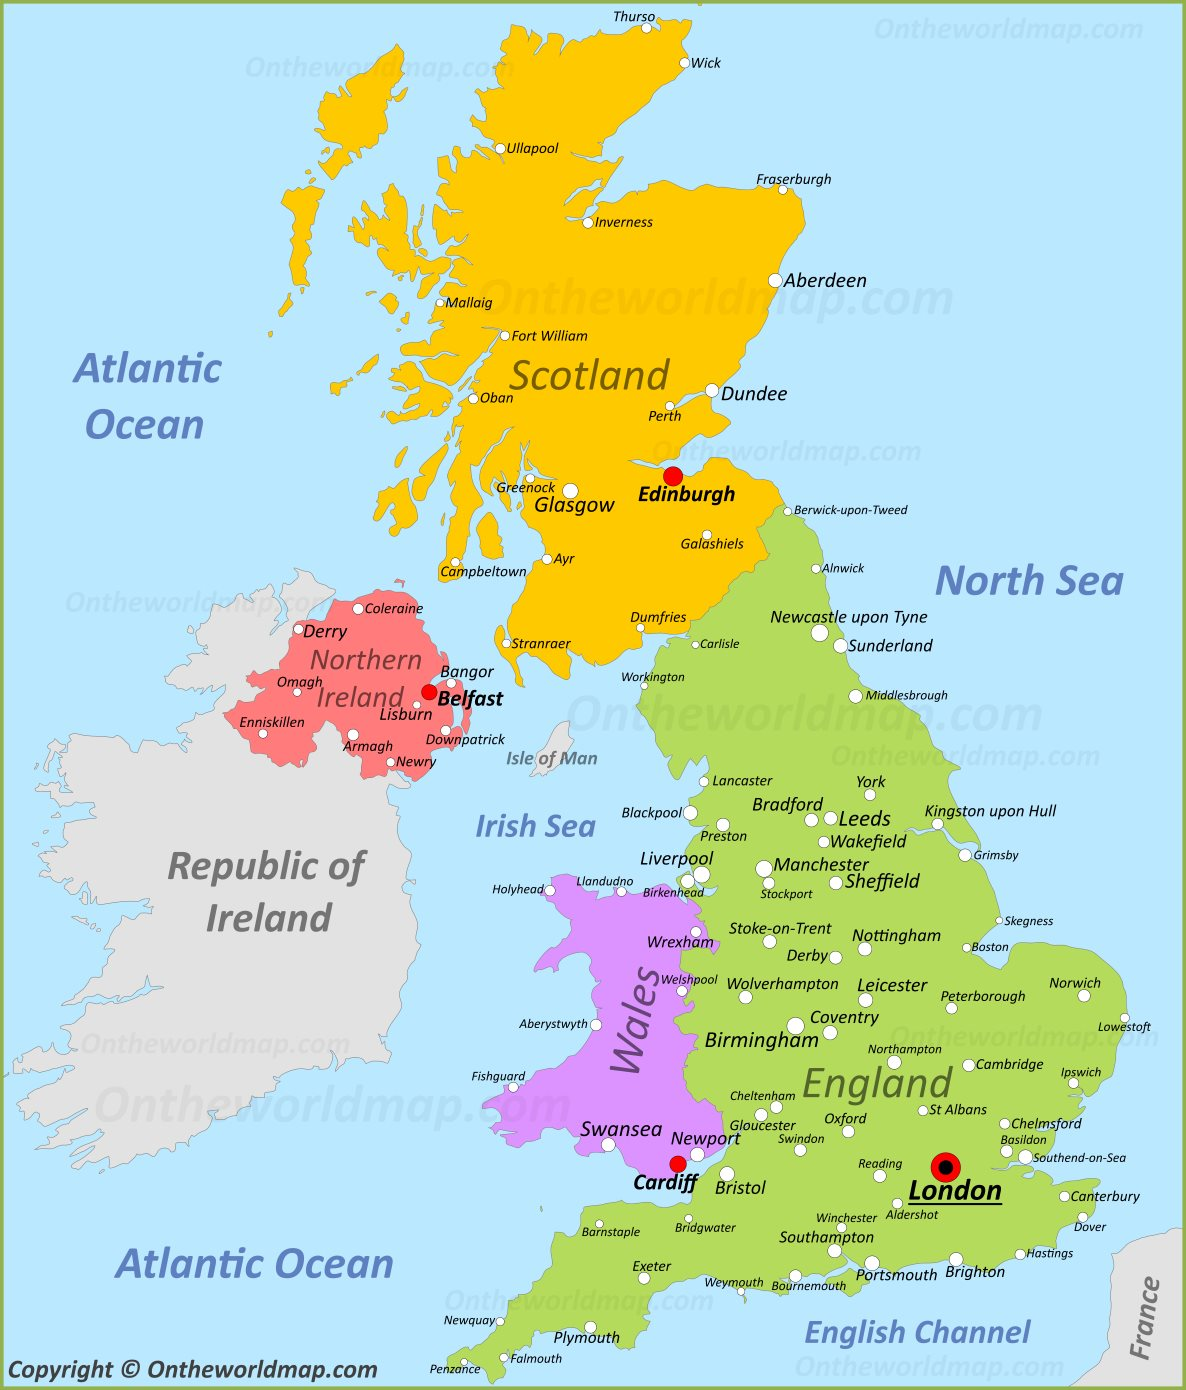 Maps Of The Uk UK Maps | Maps of United Kingdom